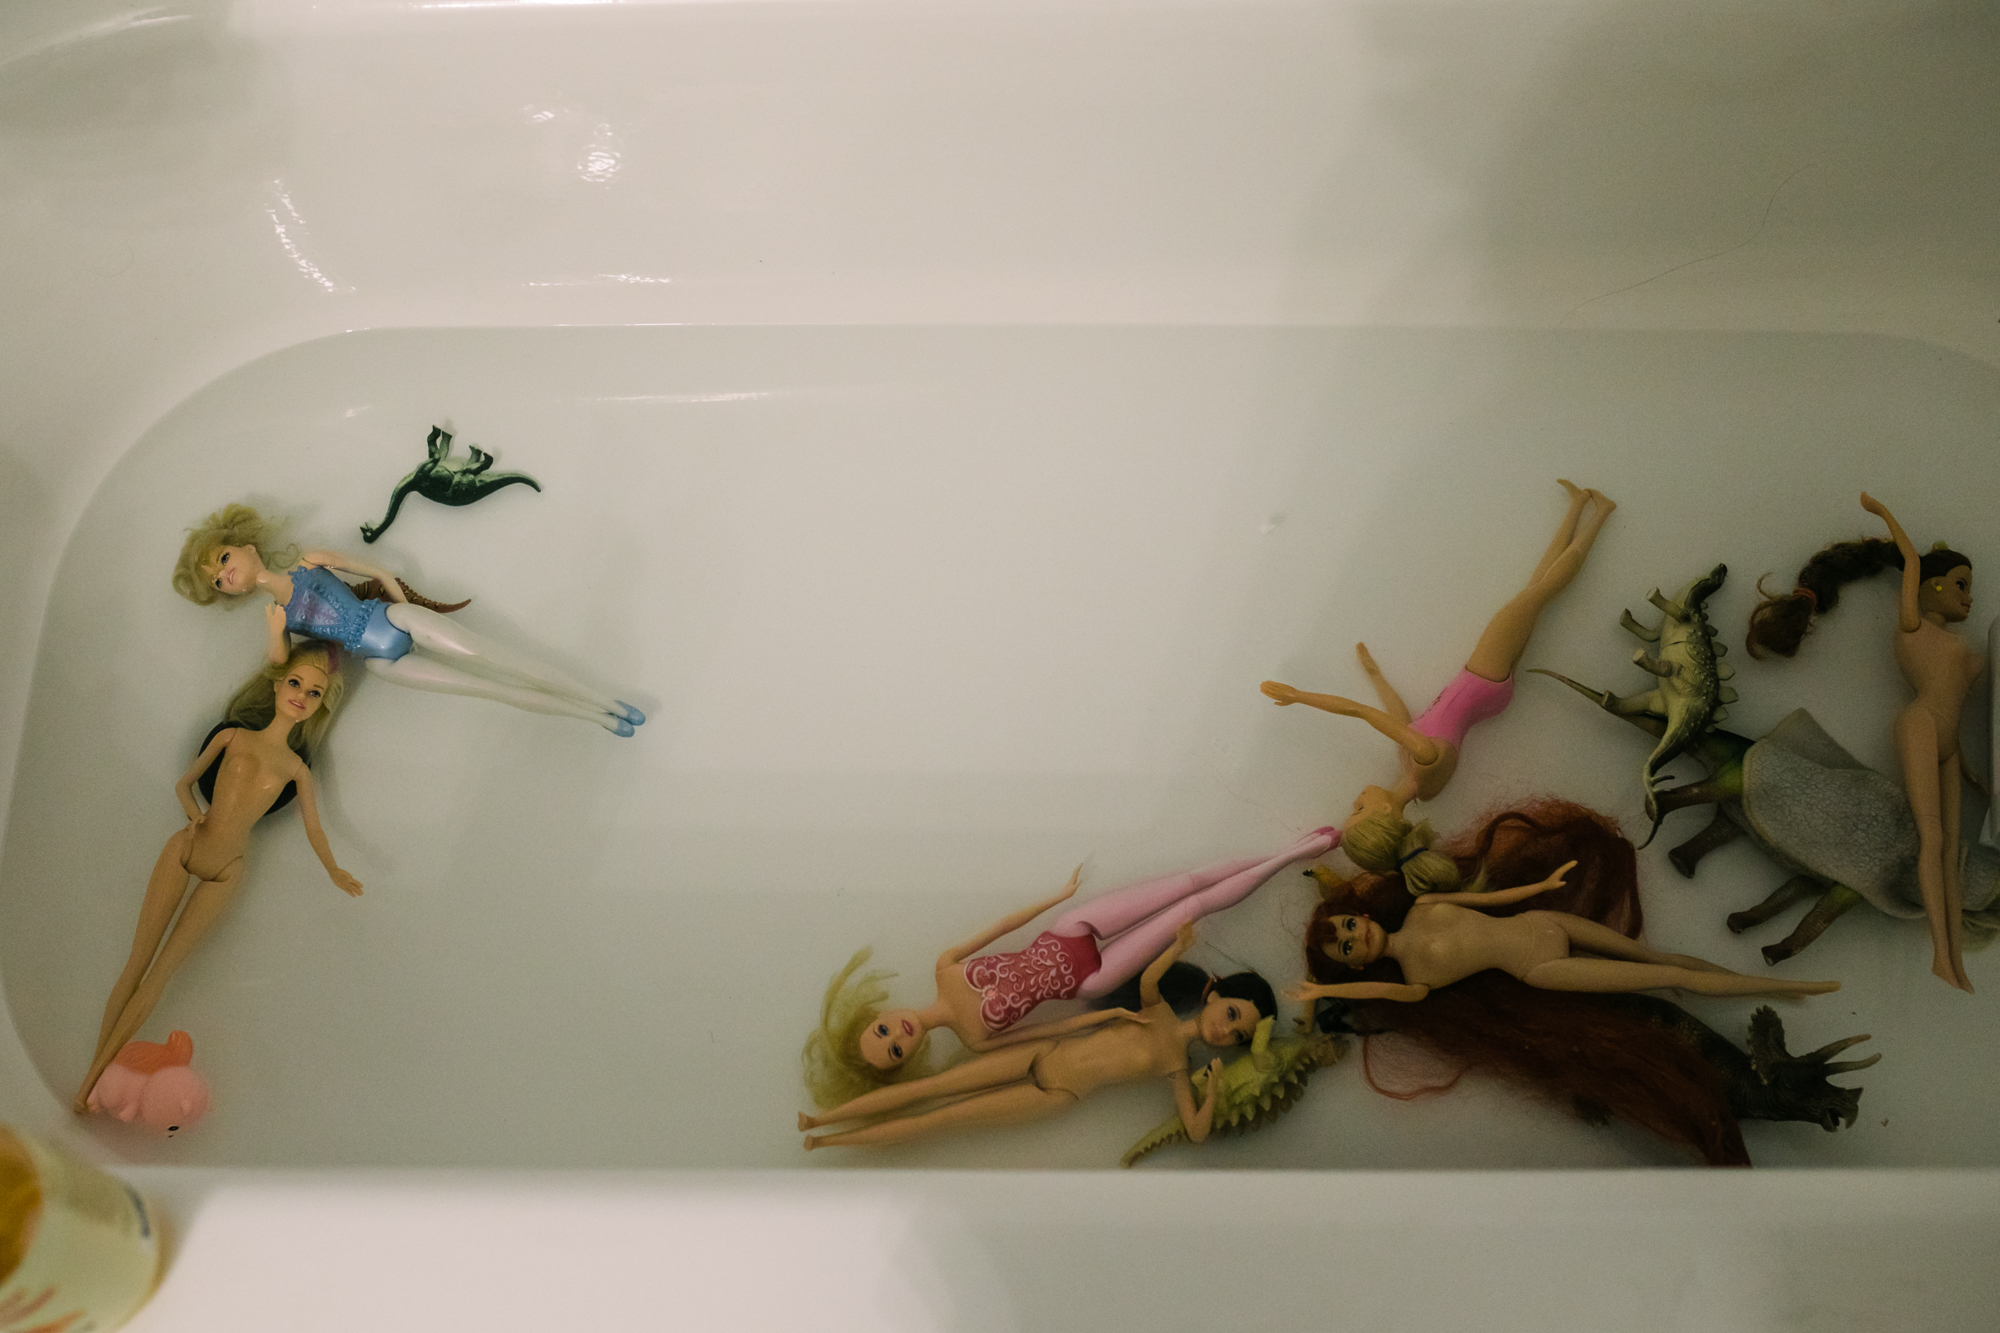 Several Barbies float in bathwater in a bathtub during a documentary family photography session